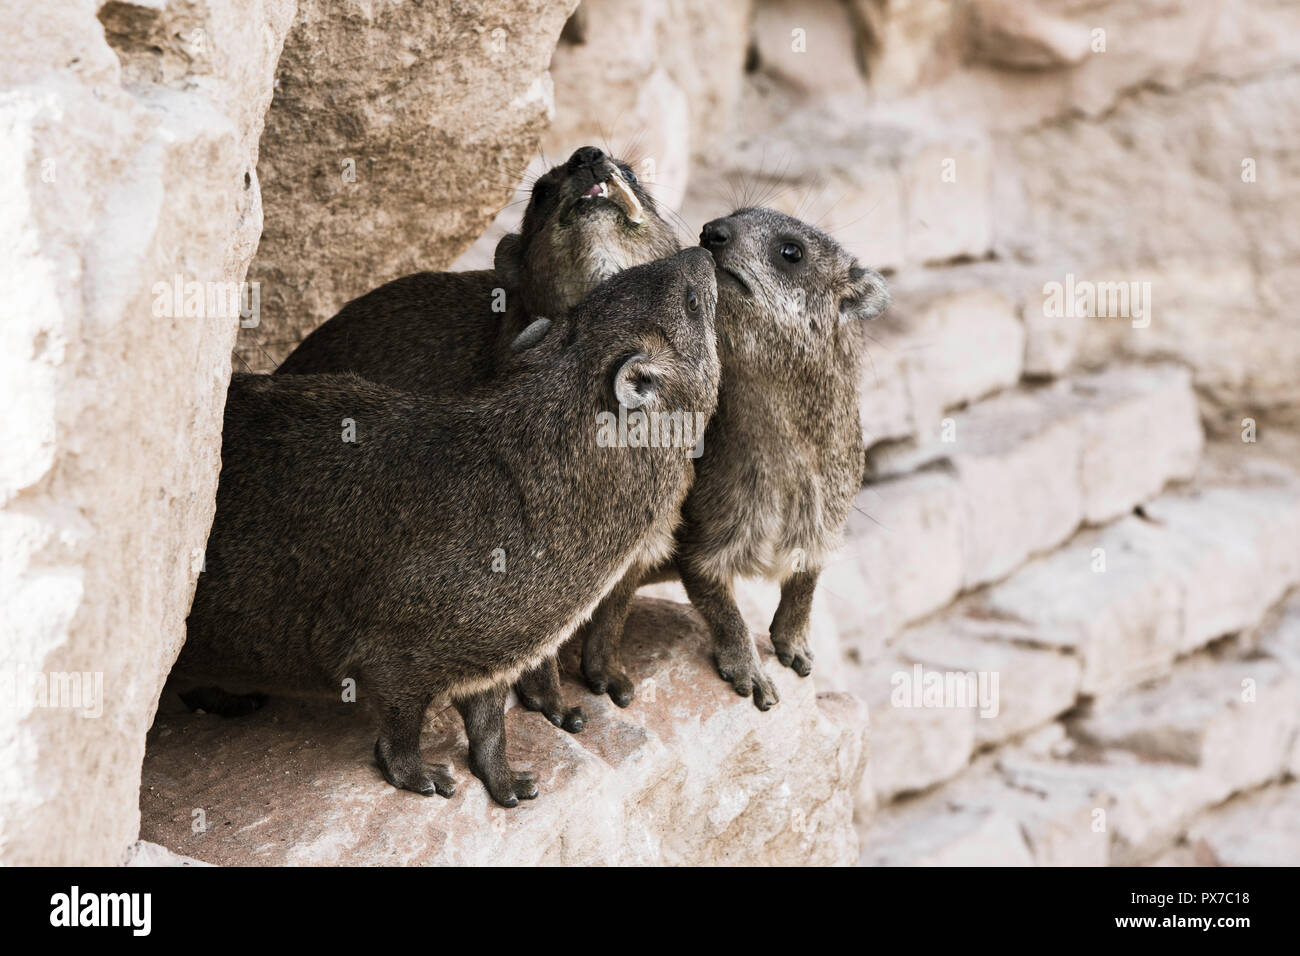 A Rock Hyrax, otherwise known as a Cape Hyrax and a Dassie, in South Africa Stock Photo